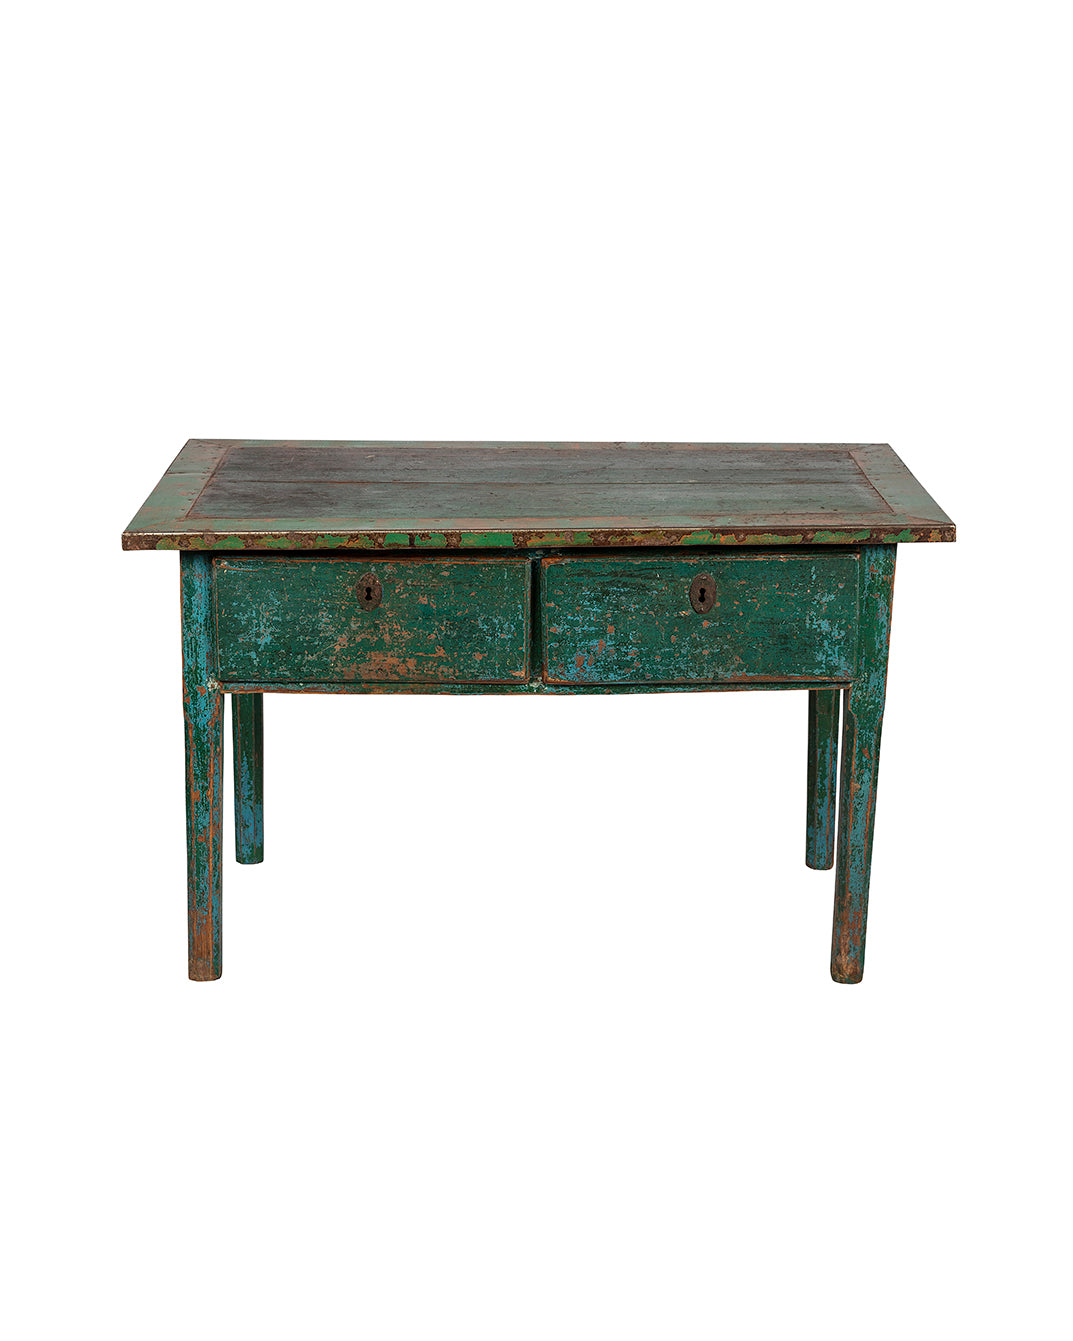 Polychrome green and blue table